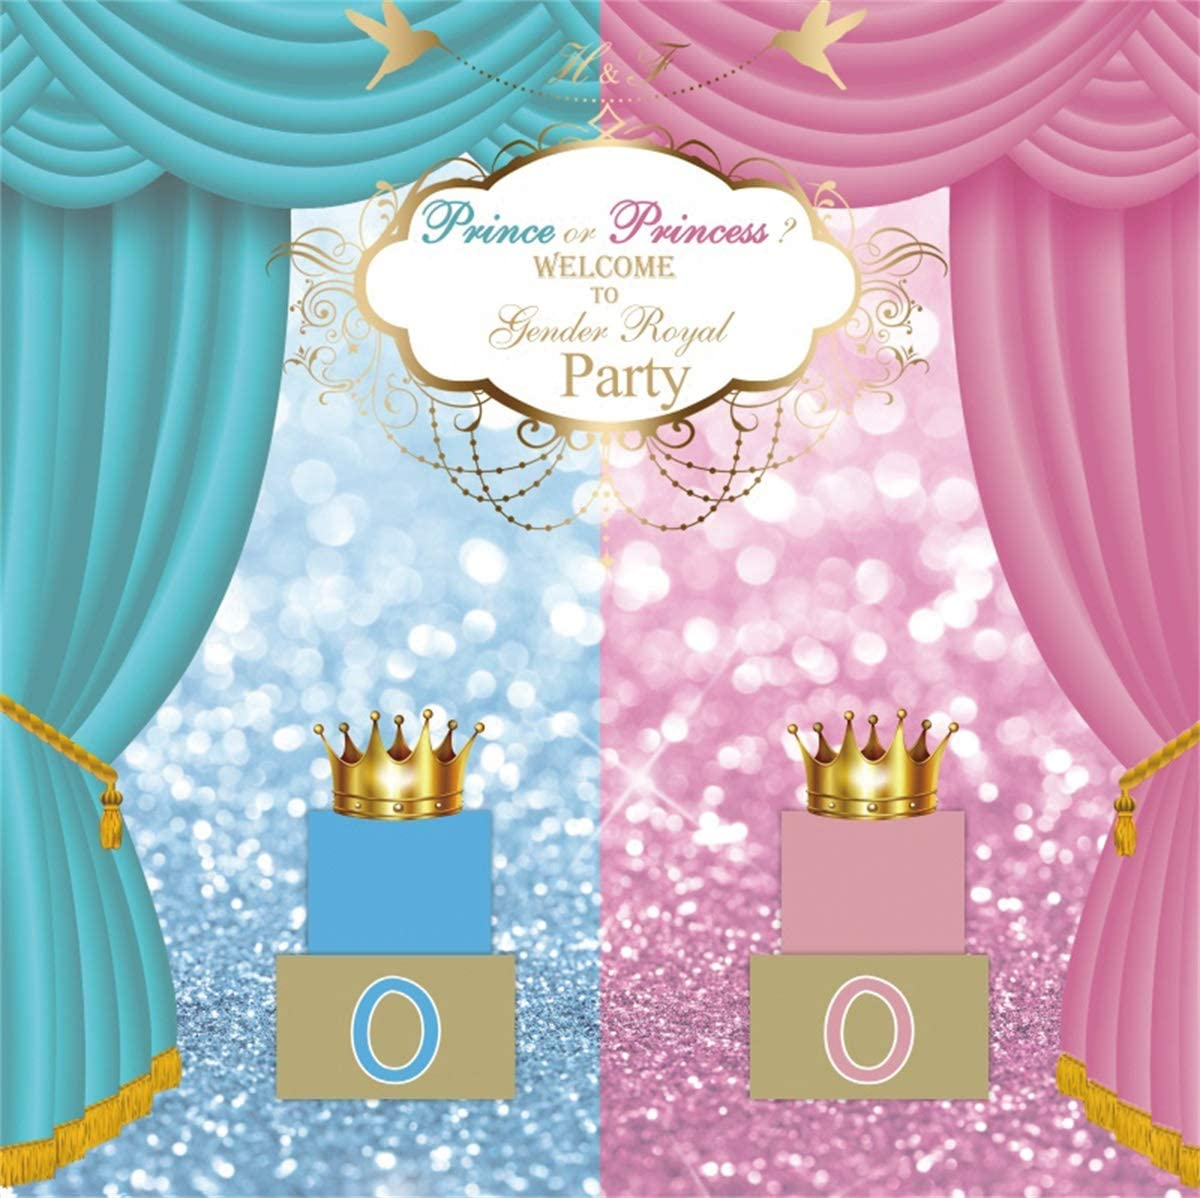 Yeele Gender Reveal Backdrop Prince or Princess 10x10ft Baby Shower Party Photography Backdrop Newborn Infant Kids Artistic Portrait Room Decoration Photo Booth Photoshoot Props Wallpaper